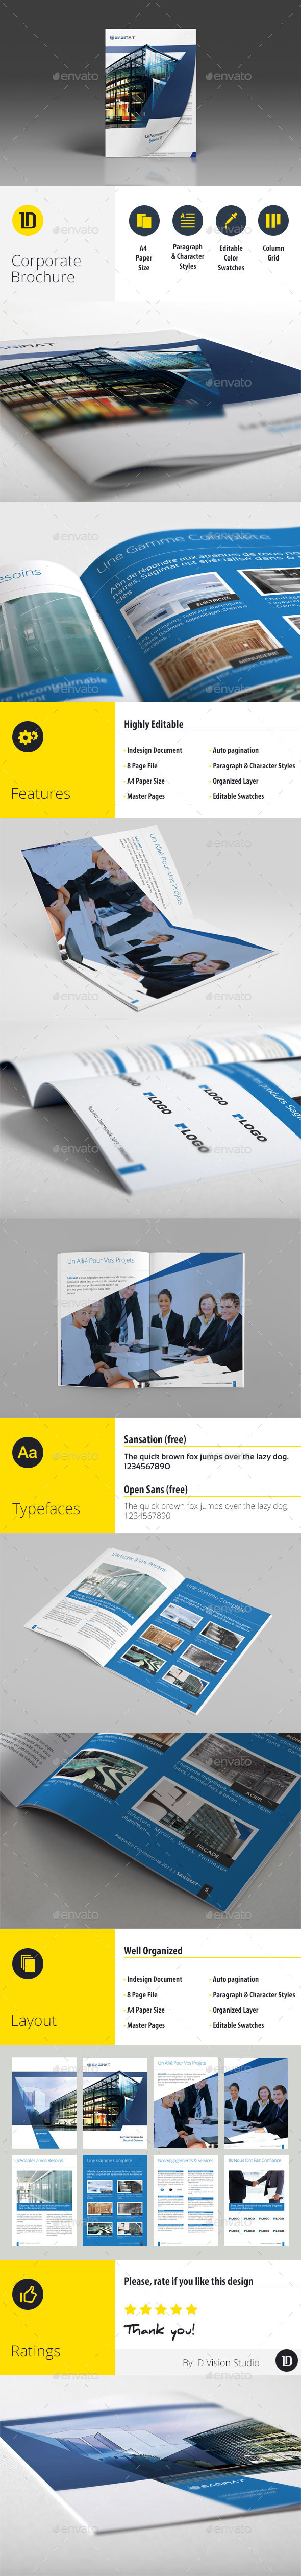 Corporate Business A4 Brochure 8 Pages InDesign - Corporate Brochures